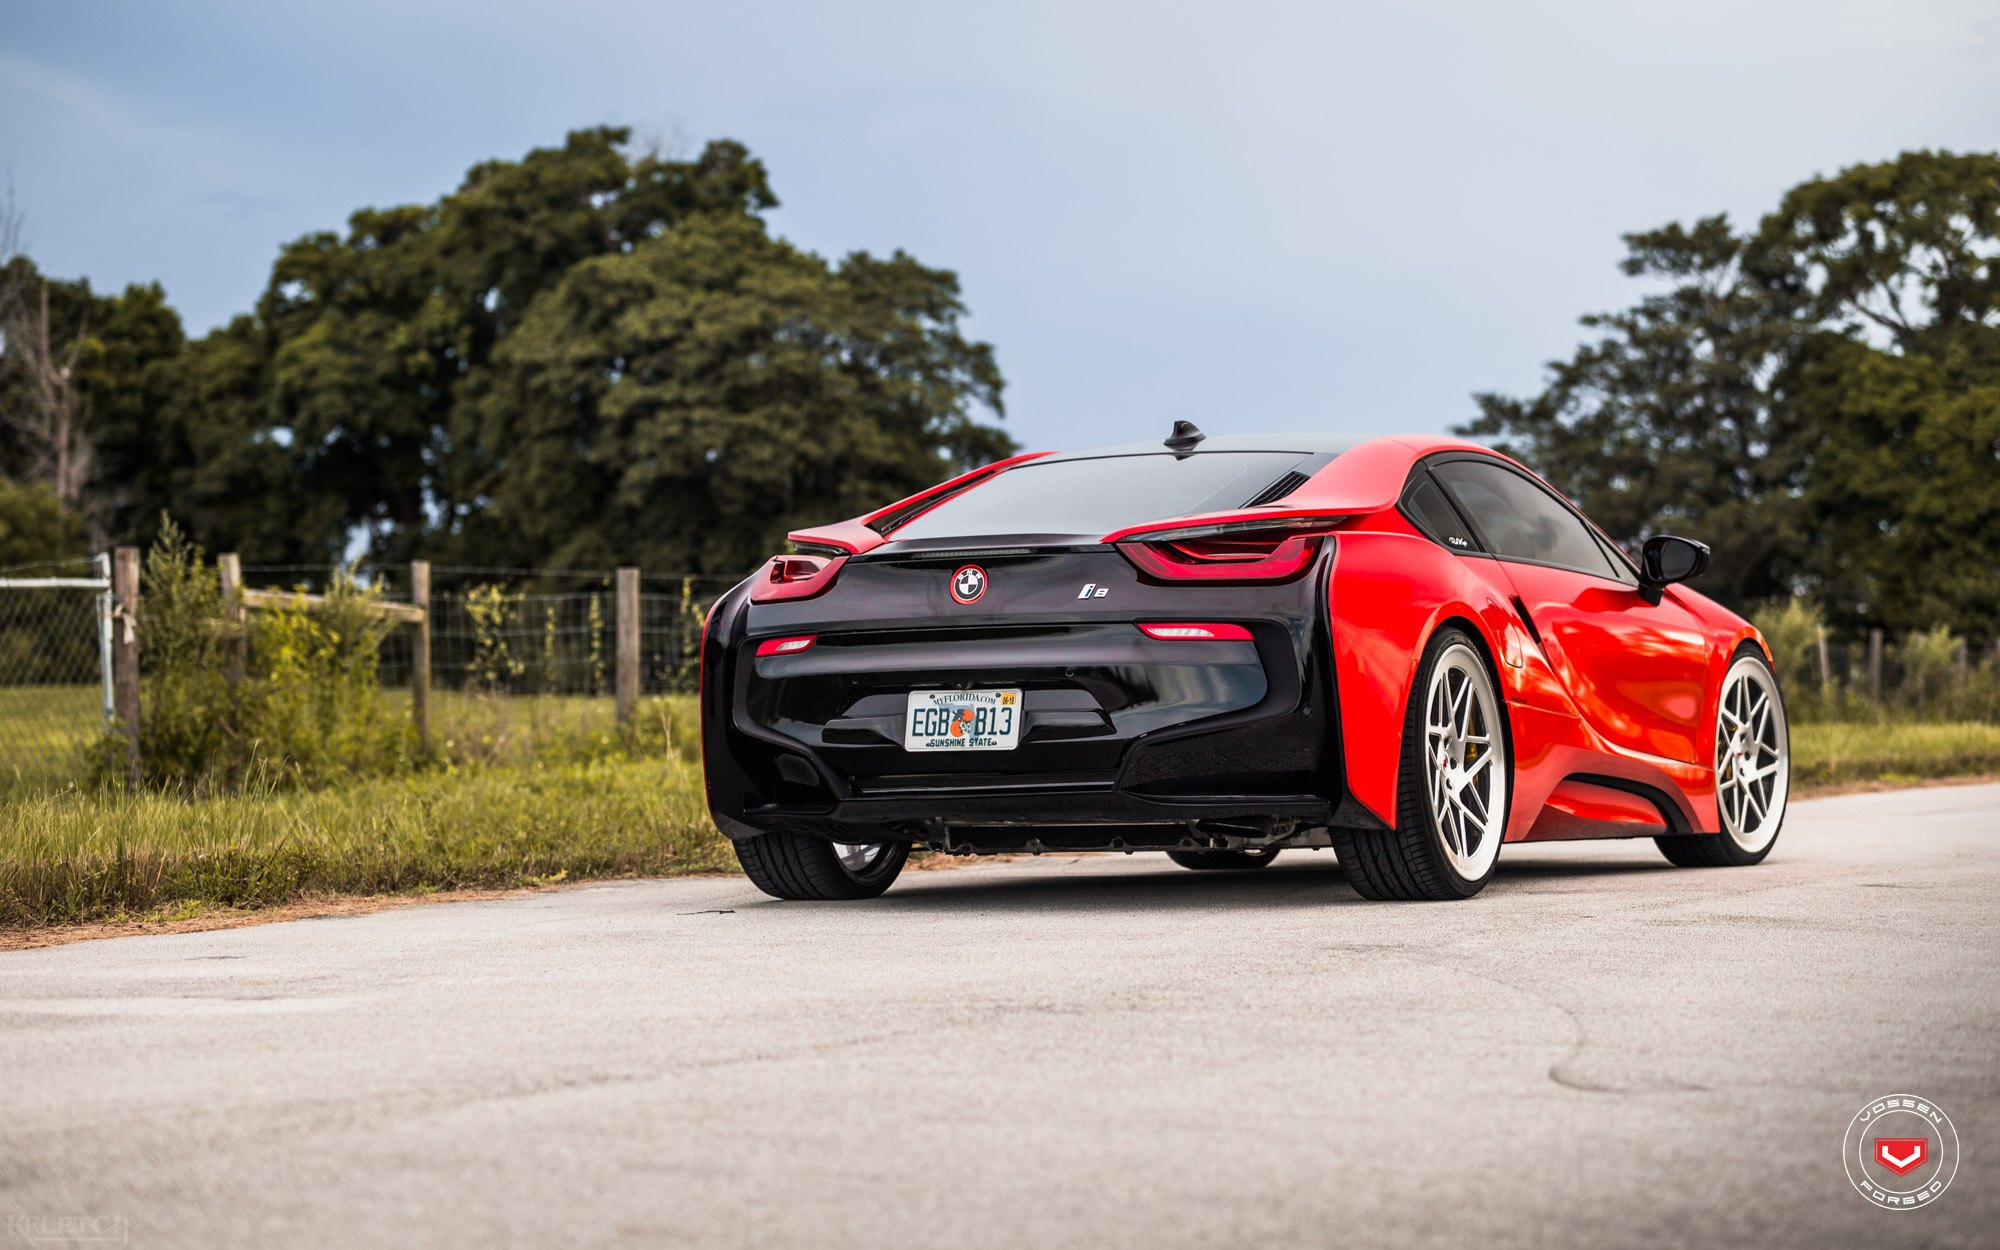 Epic Tuning That Includes Body Kit For Red Bmw I8 Carid Com Gallery